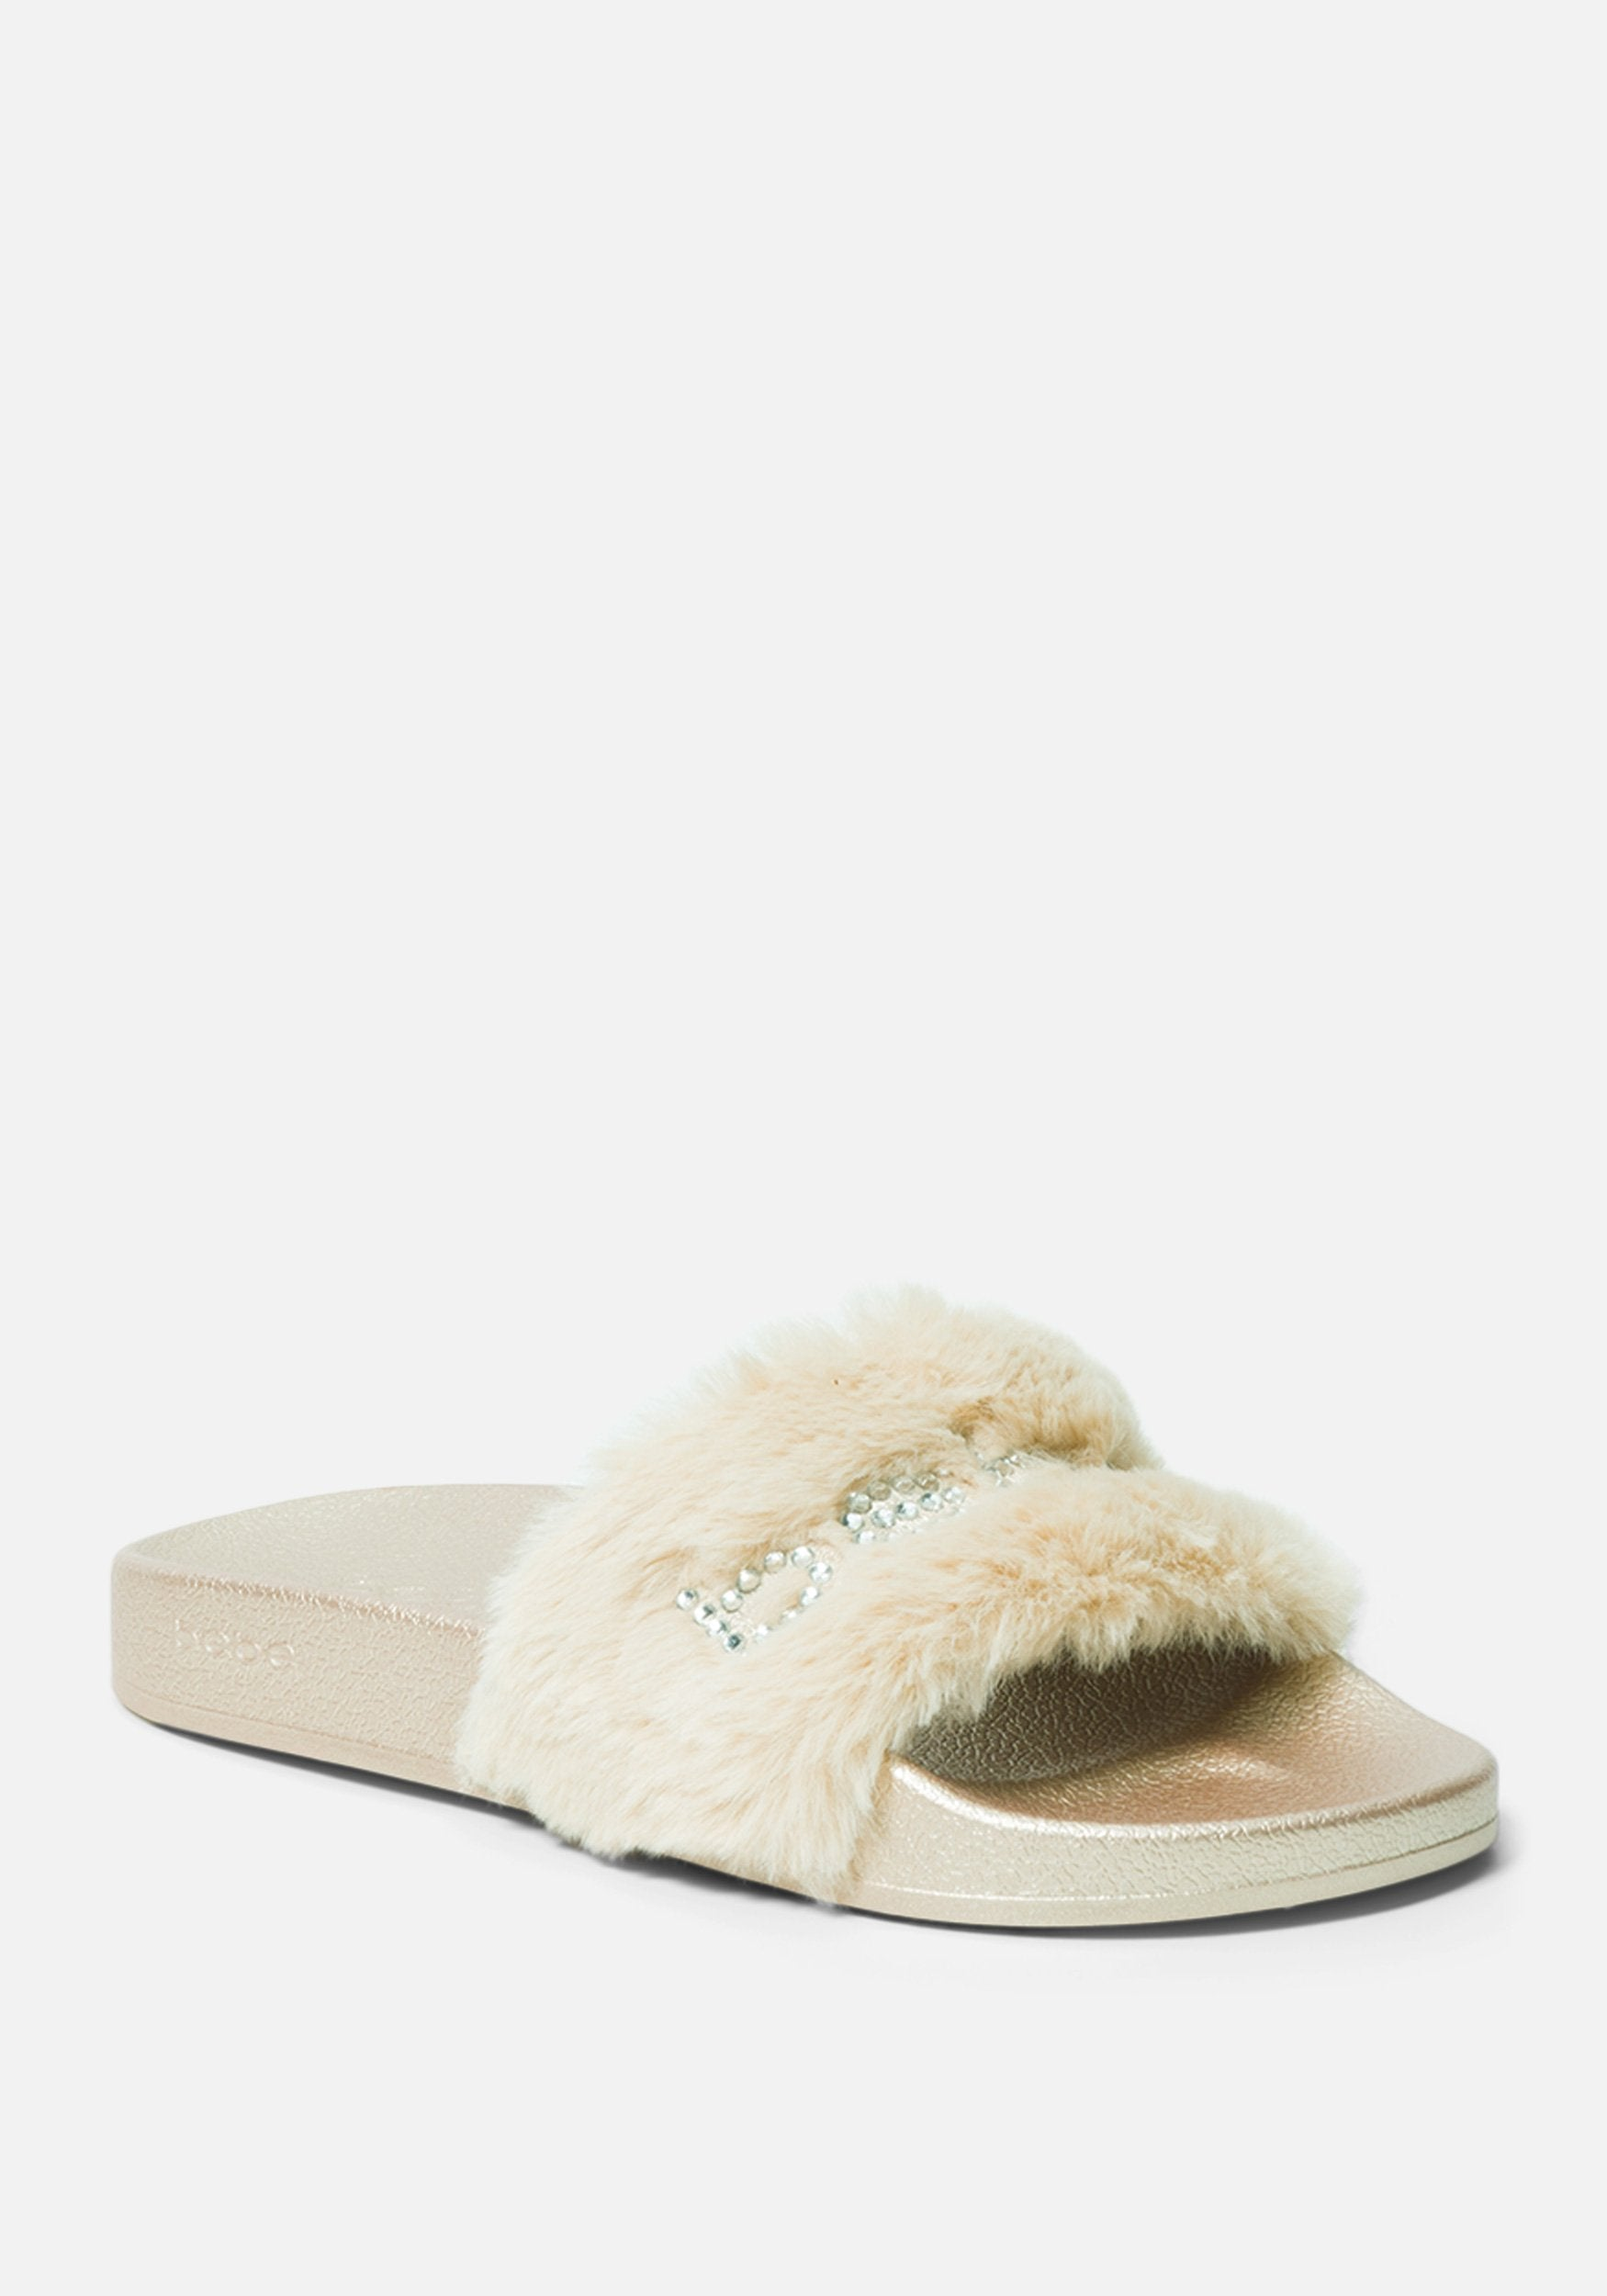 Bebe Women's Furiosa Faux Fur Slides Shoe, Size 6 in GOLD Synthetic